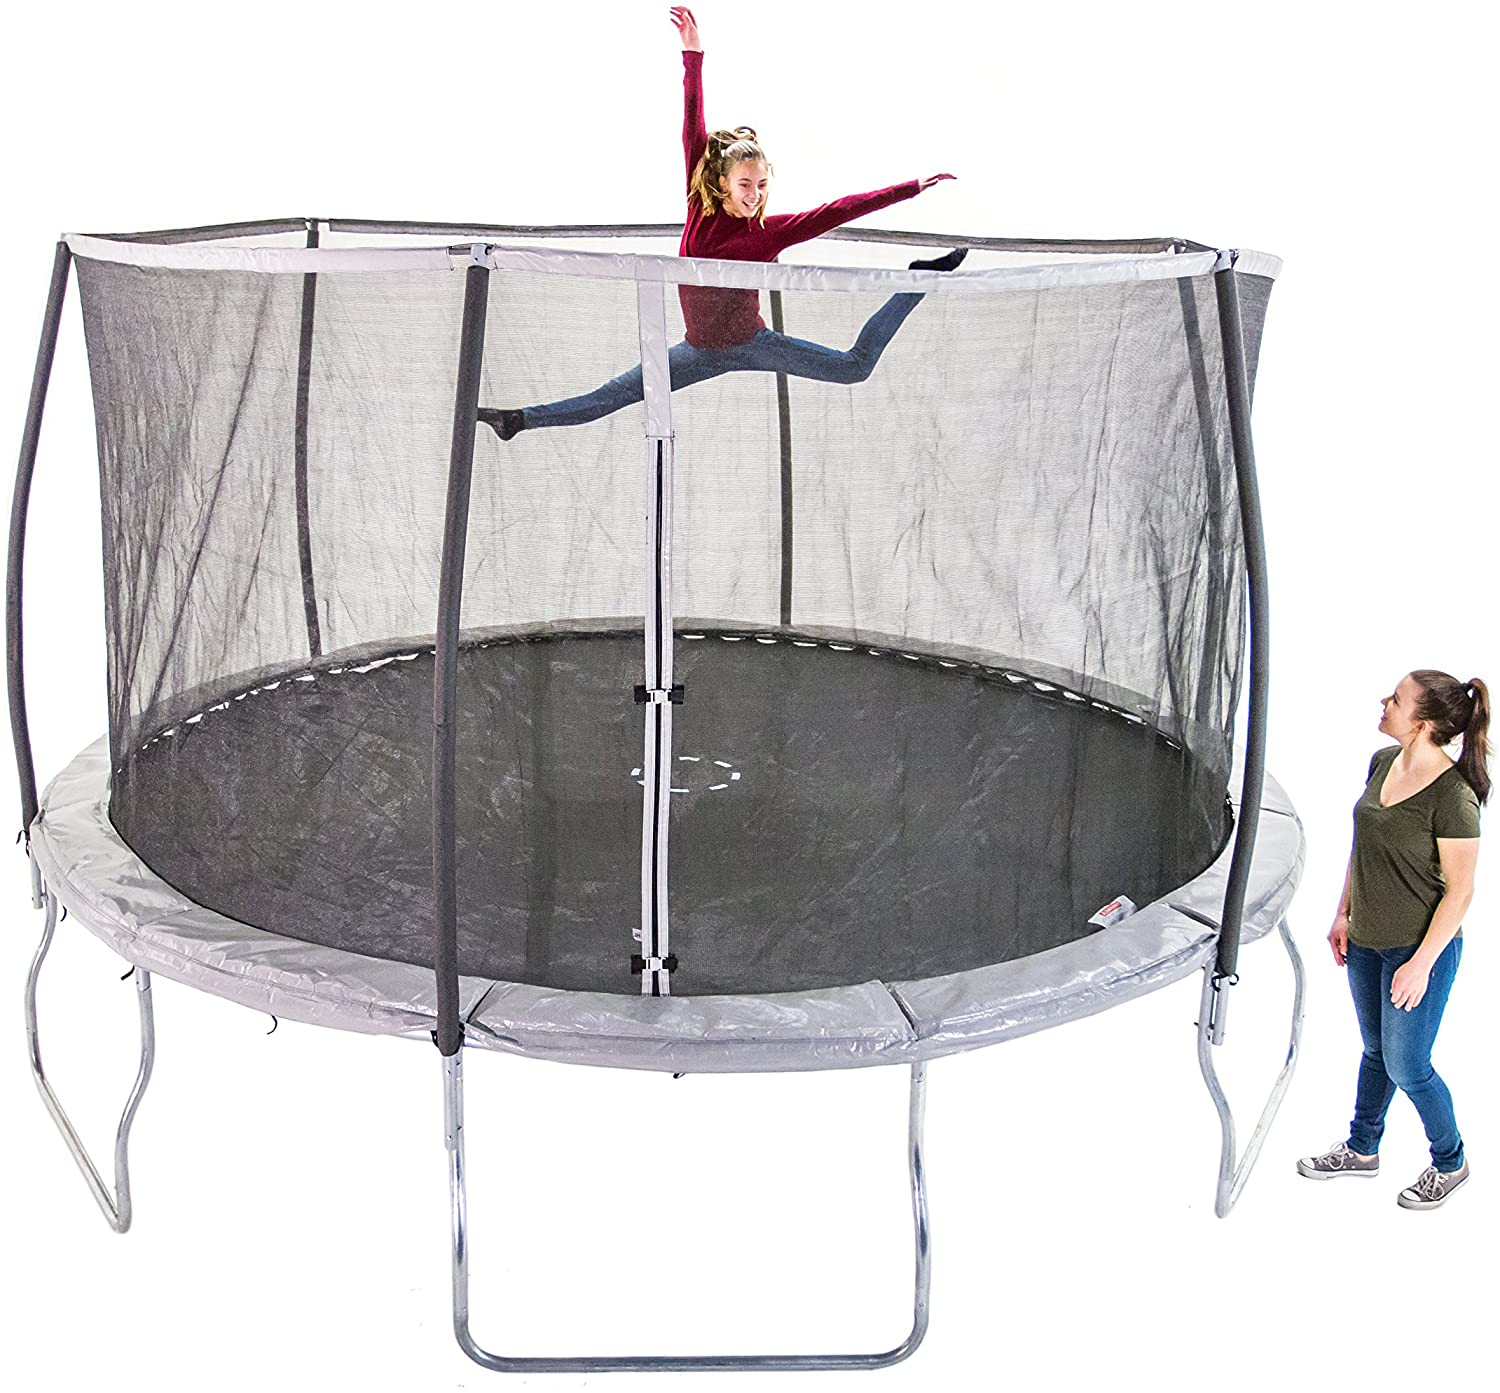 This is Sportspower 14ft Trampoline With Steelflex Unit Net as well as Poles. The young sister is jumping while the mommy is standing aside watching her.